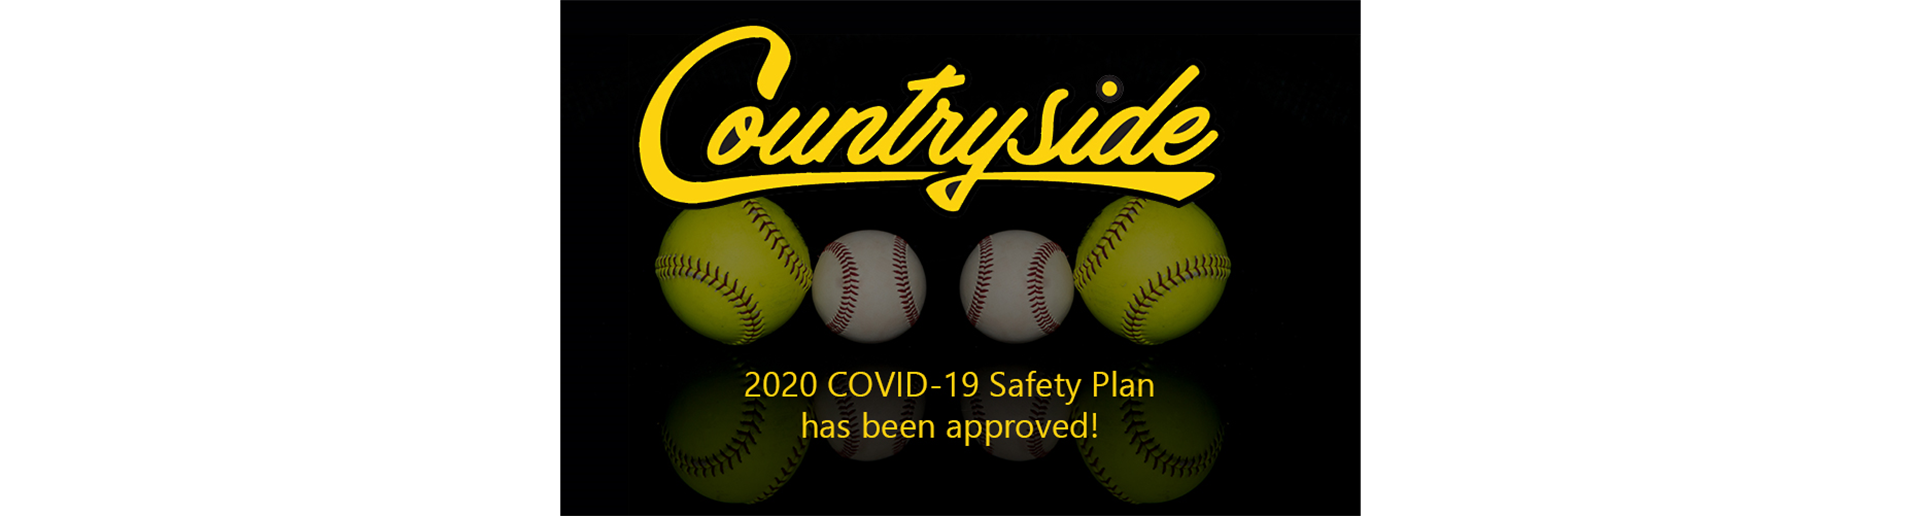 2020 Covid-19 Safety Plan